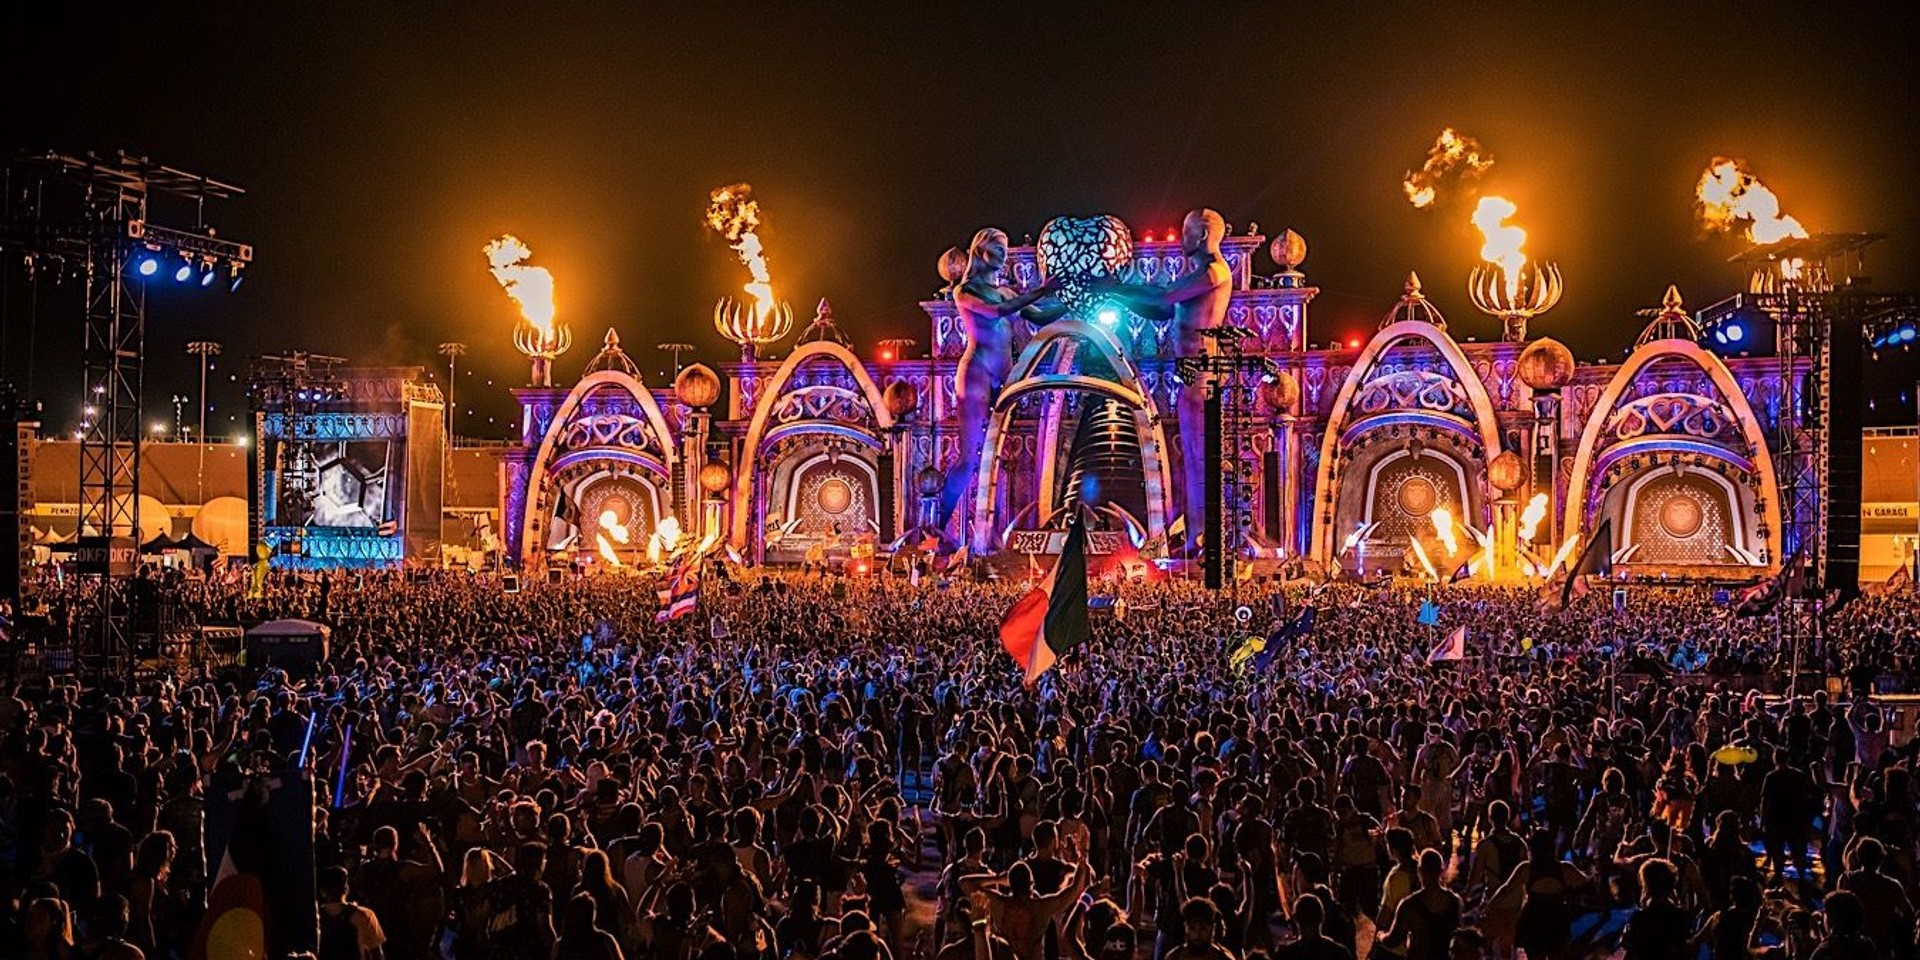 North America's largest EDM festival Electric Daisy Carnival has been postponed